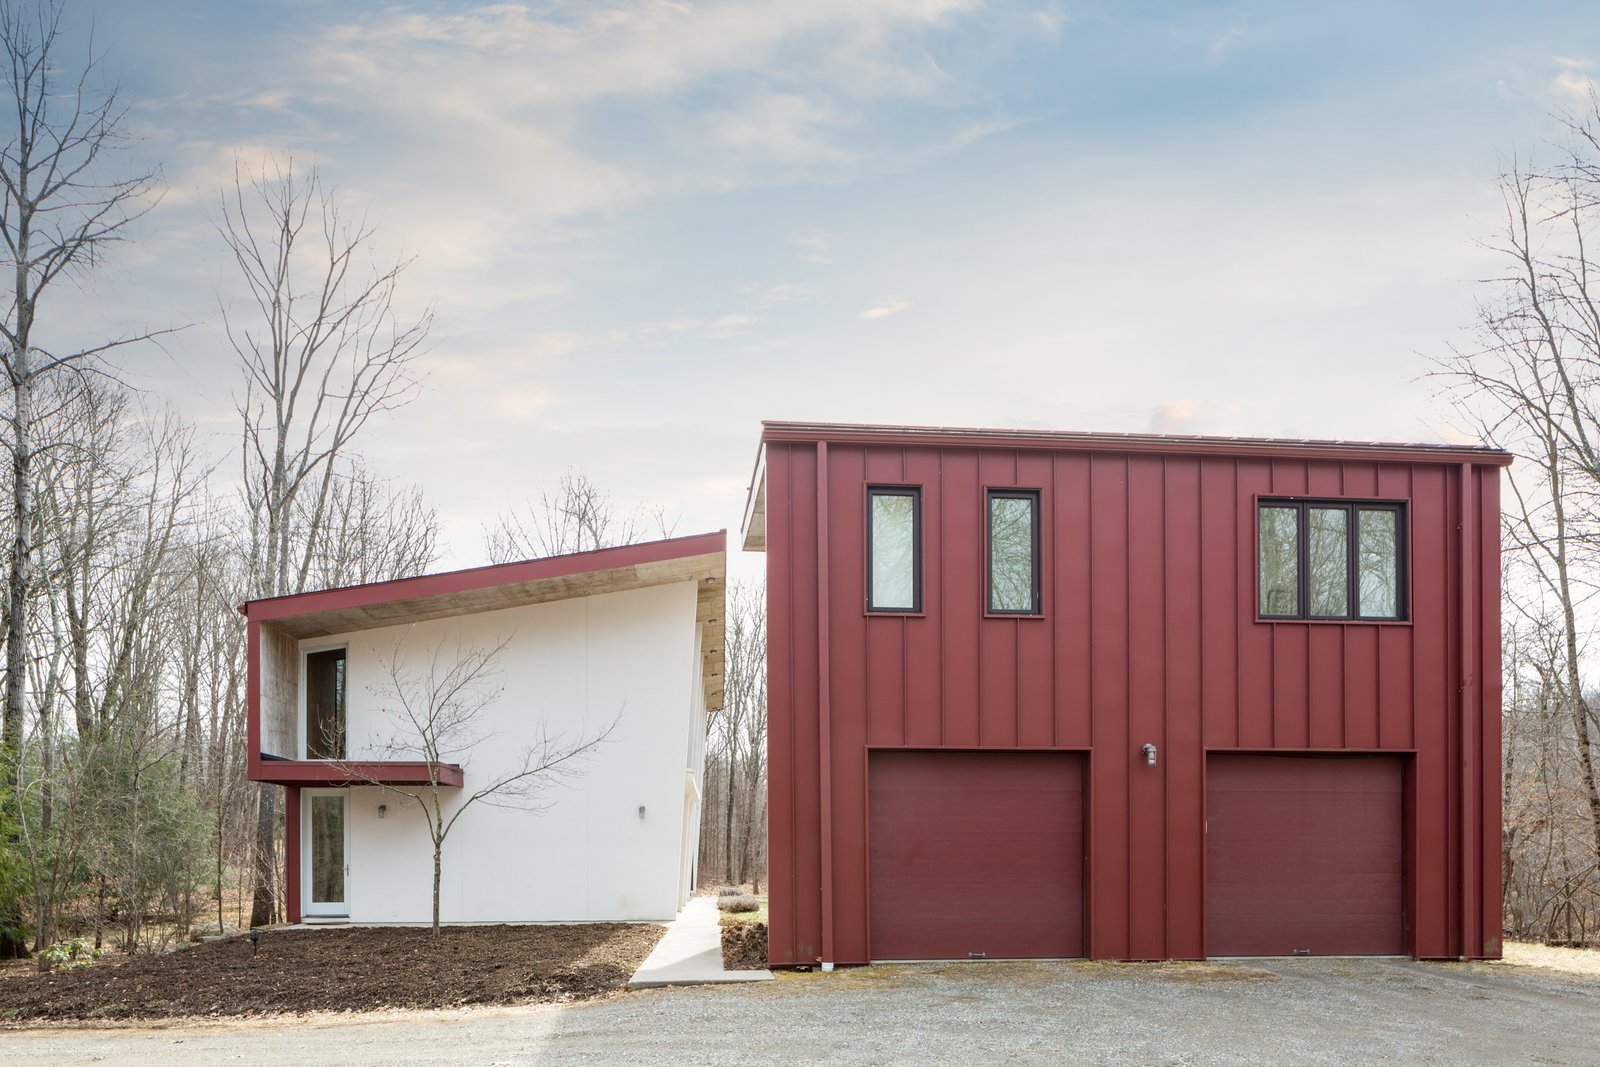 Above the two-bay garage is a guest apartment (approximately 600 square feet.) that features a sleeping alcove, kitchen, bath, living room, laundry area, gas fireplace, and balcony.